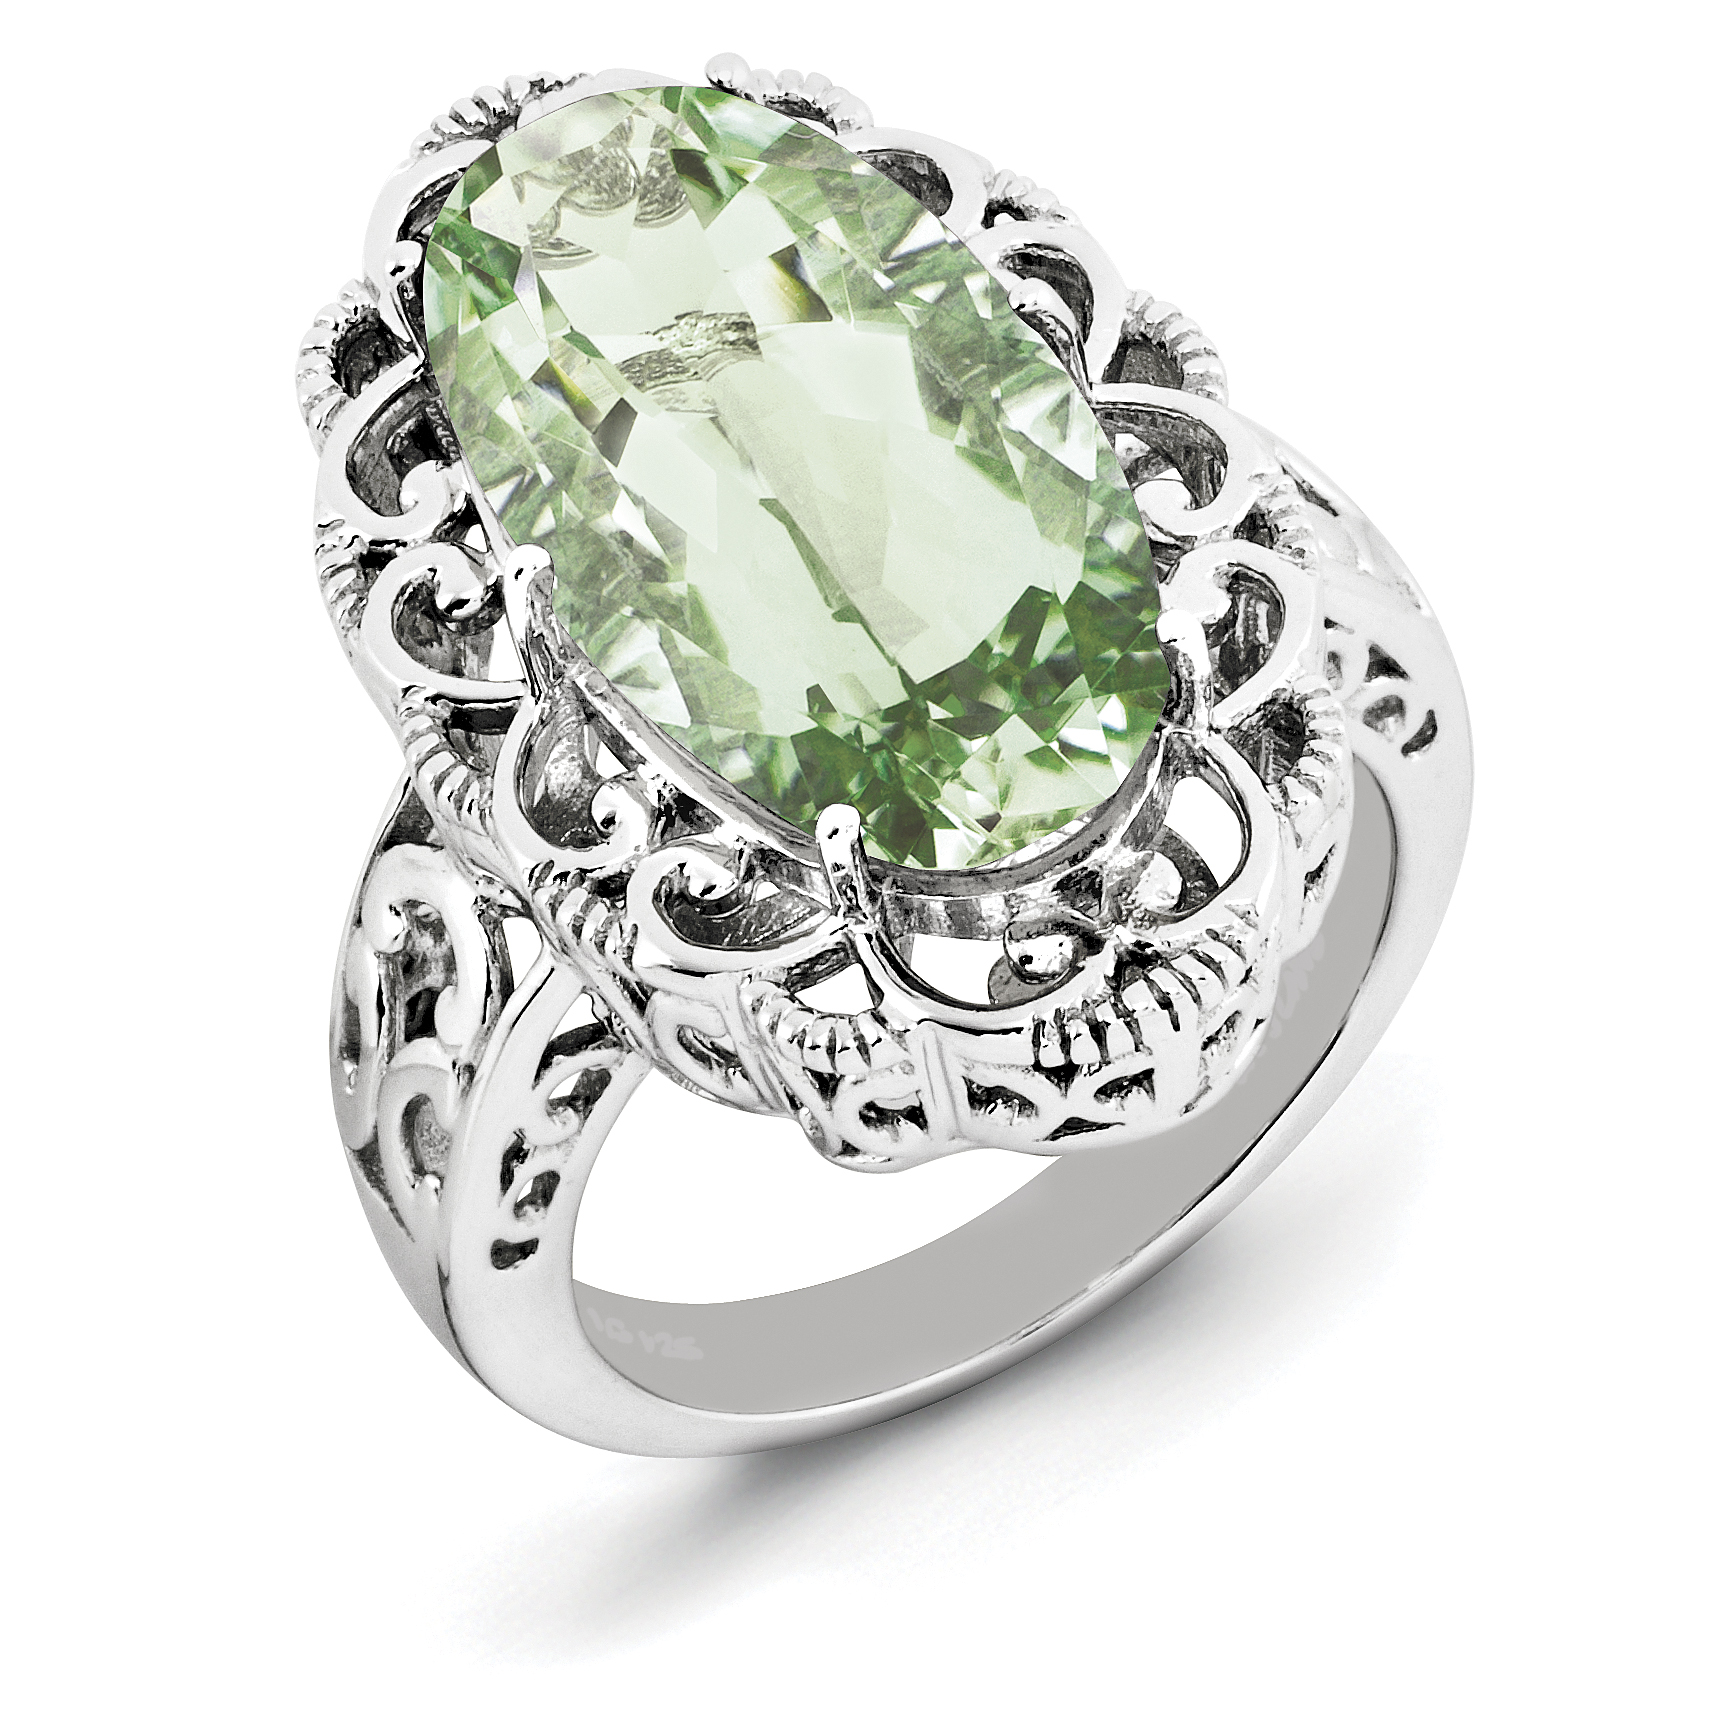 925 Sterling Silver Rhodium Oval Green Quartz Ring - image 2 of 2